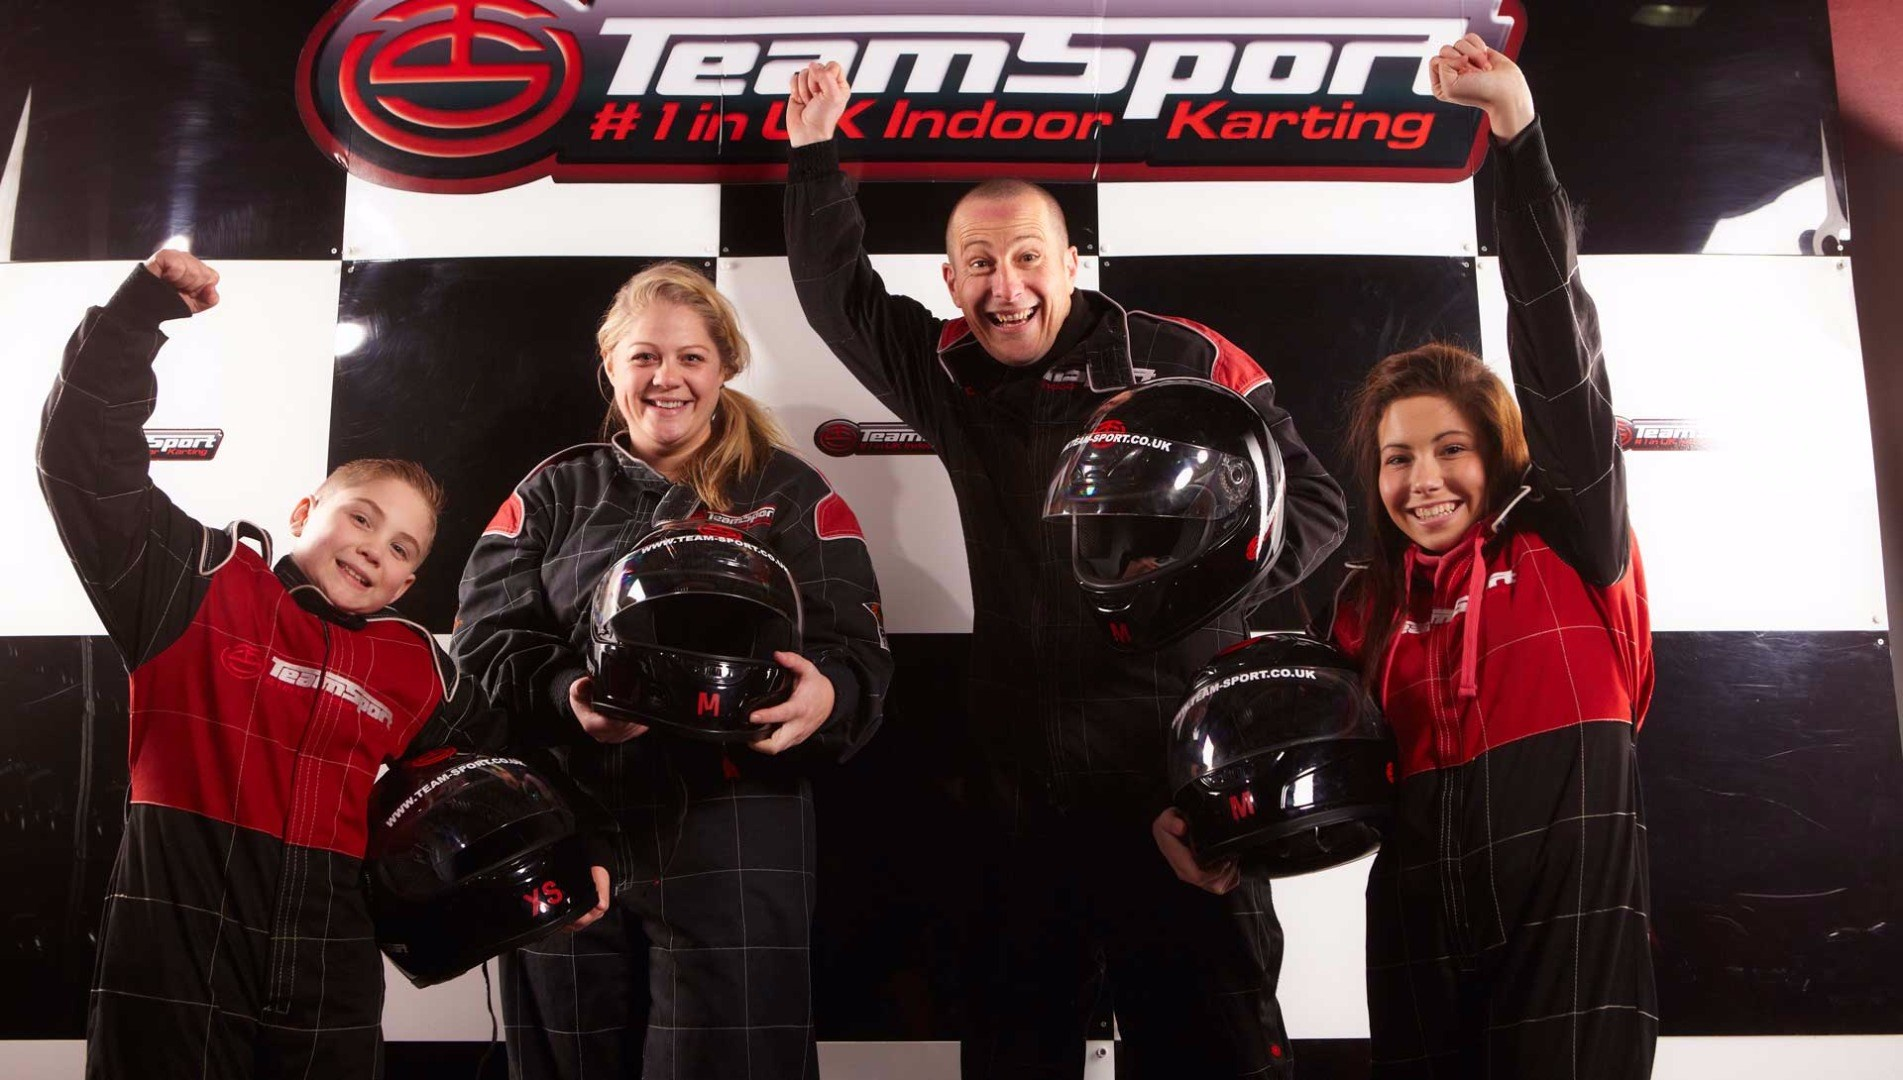 Web_Header_1920x1090_Family-go-karting.jpg